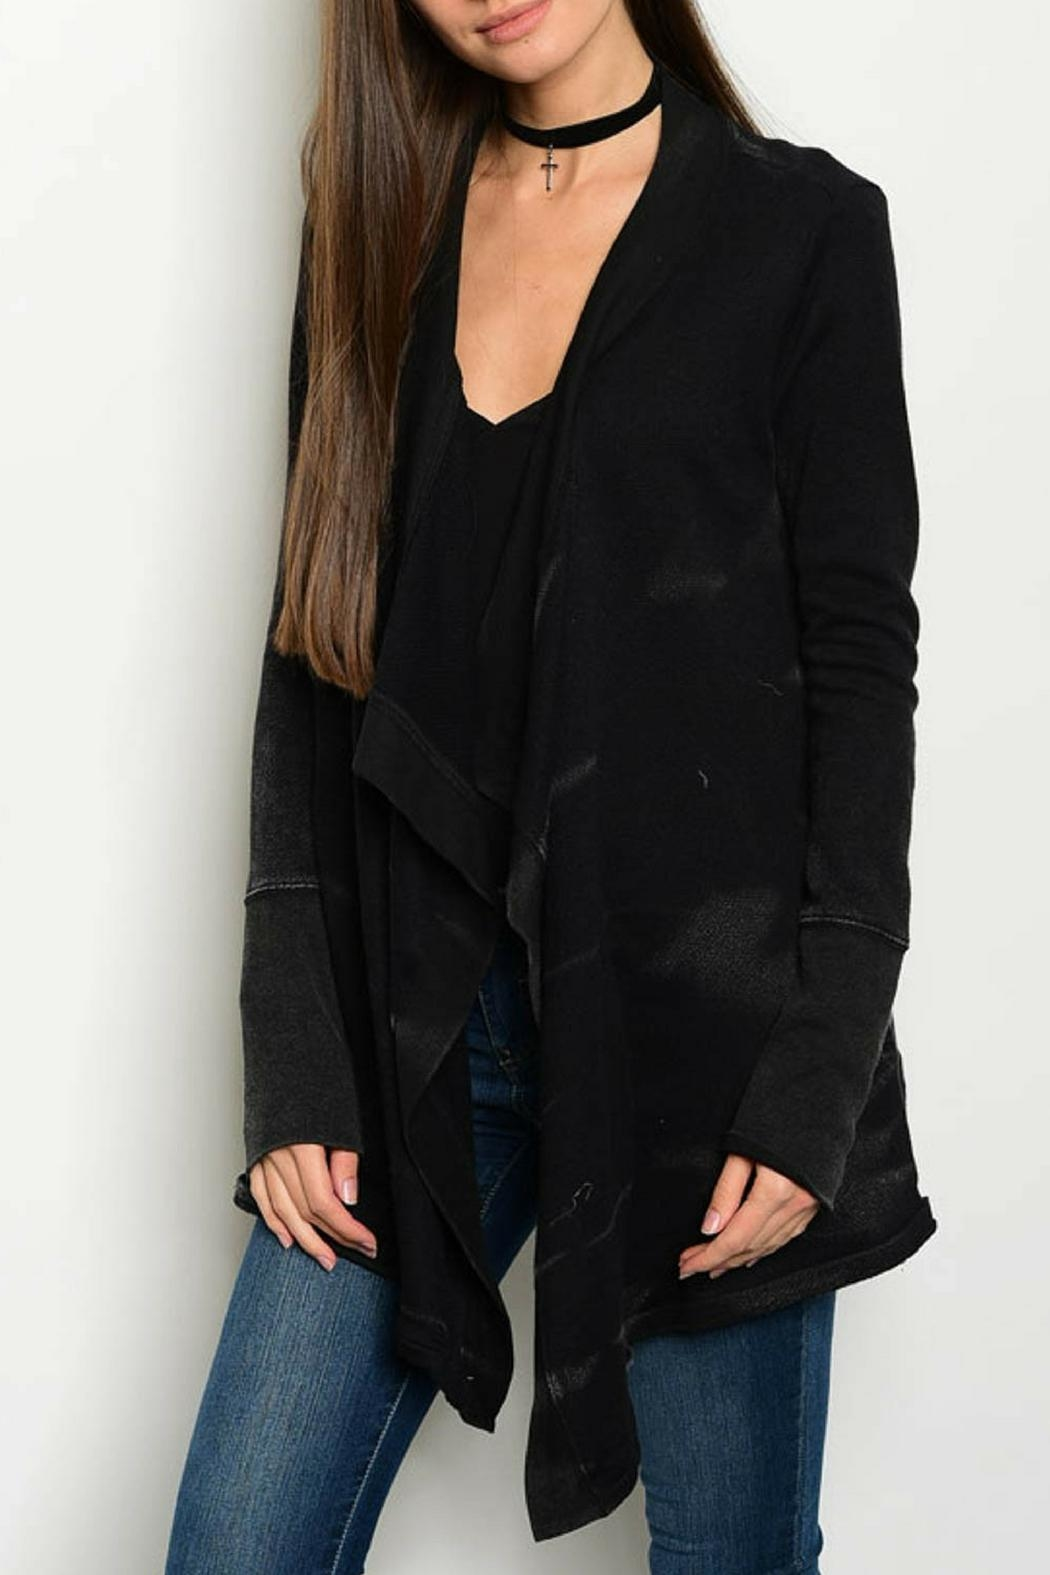 Hem & Thread Black Knit Cardigan - Front Cropped Image